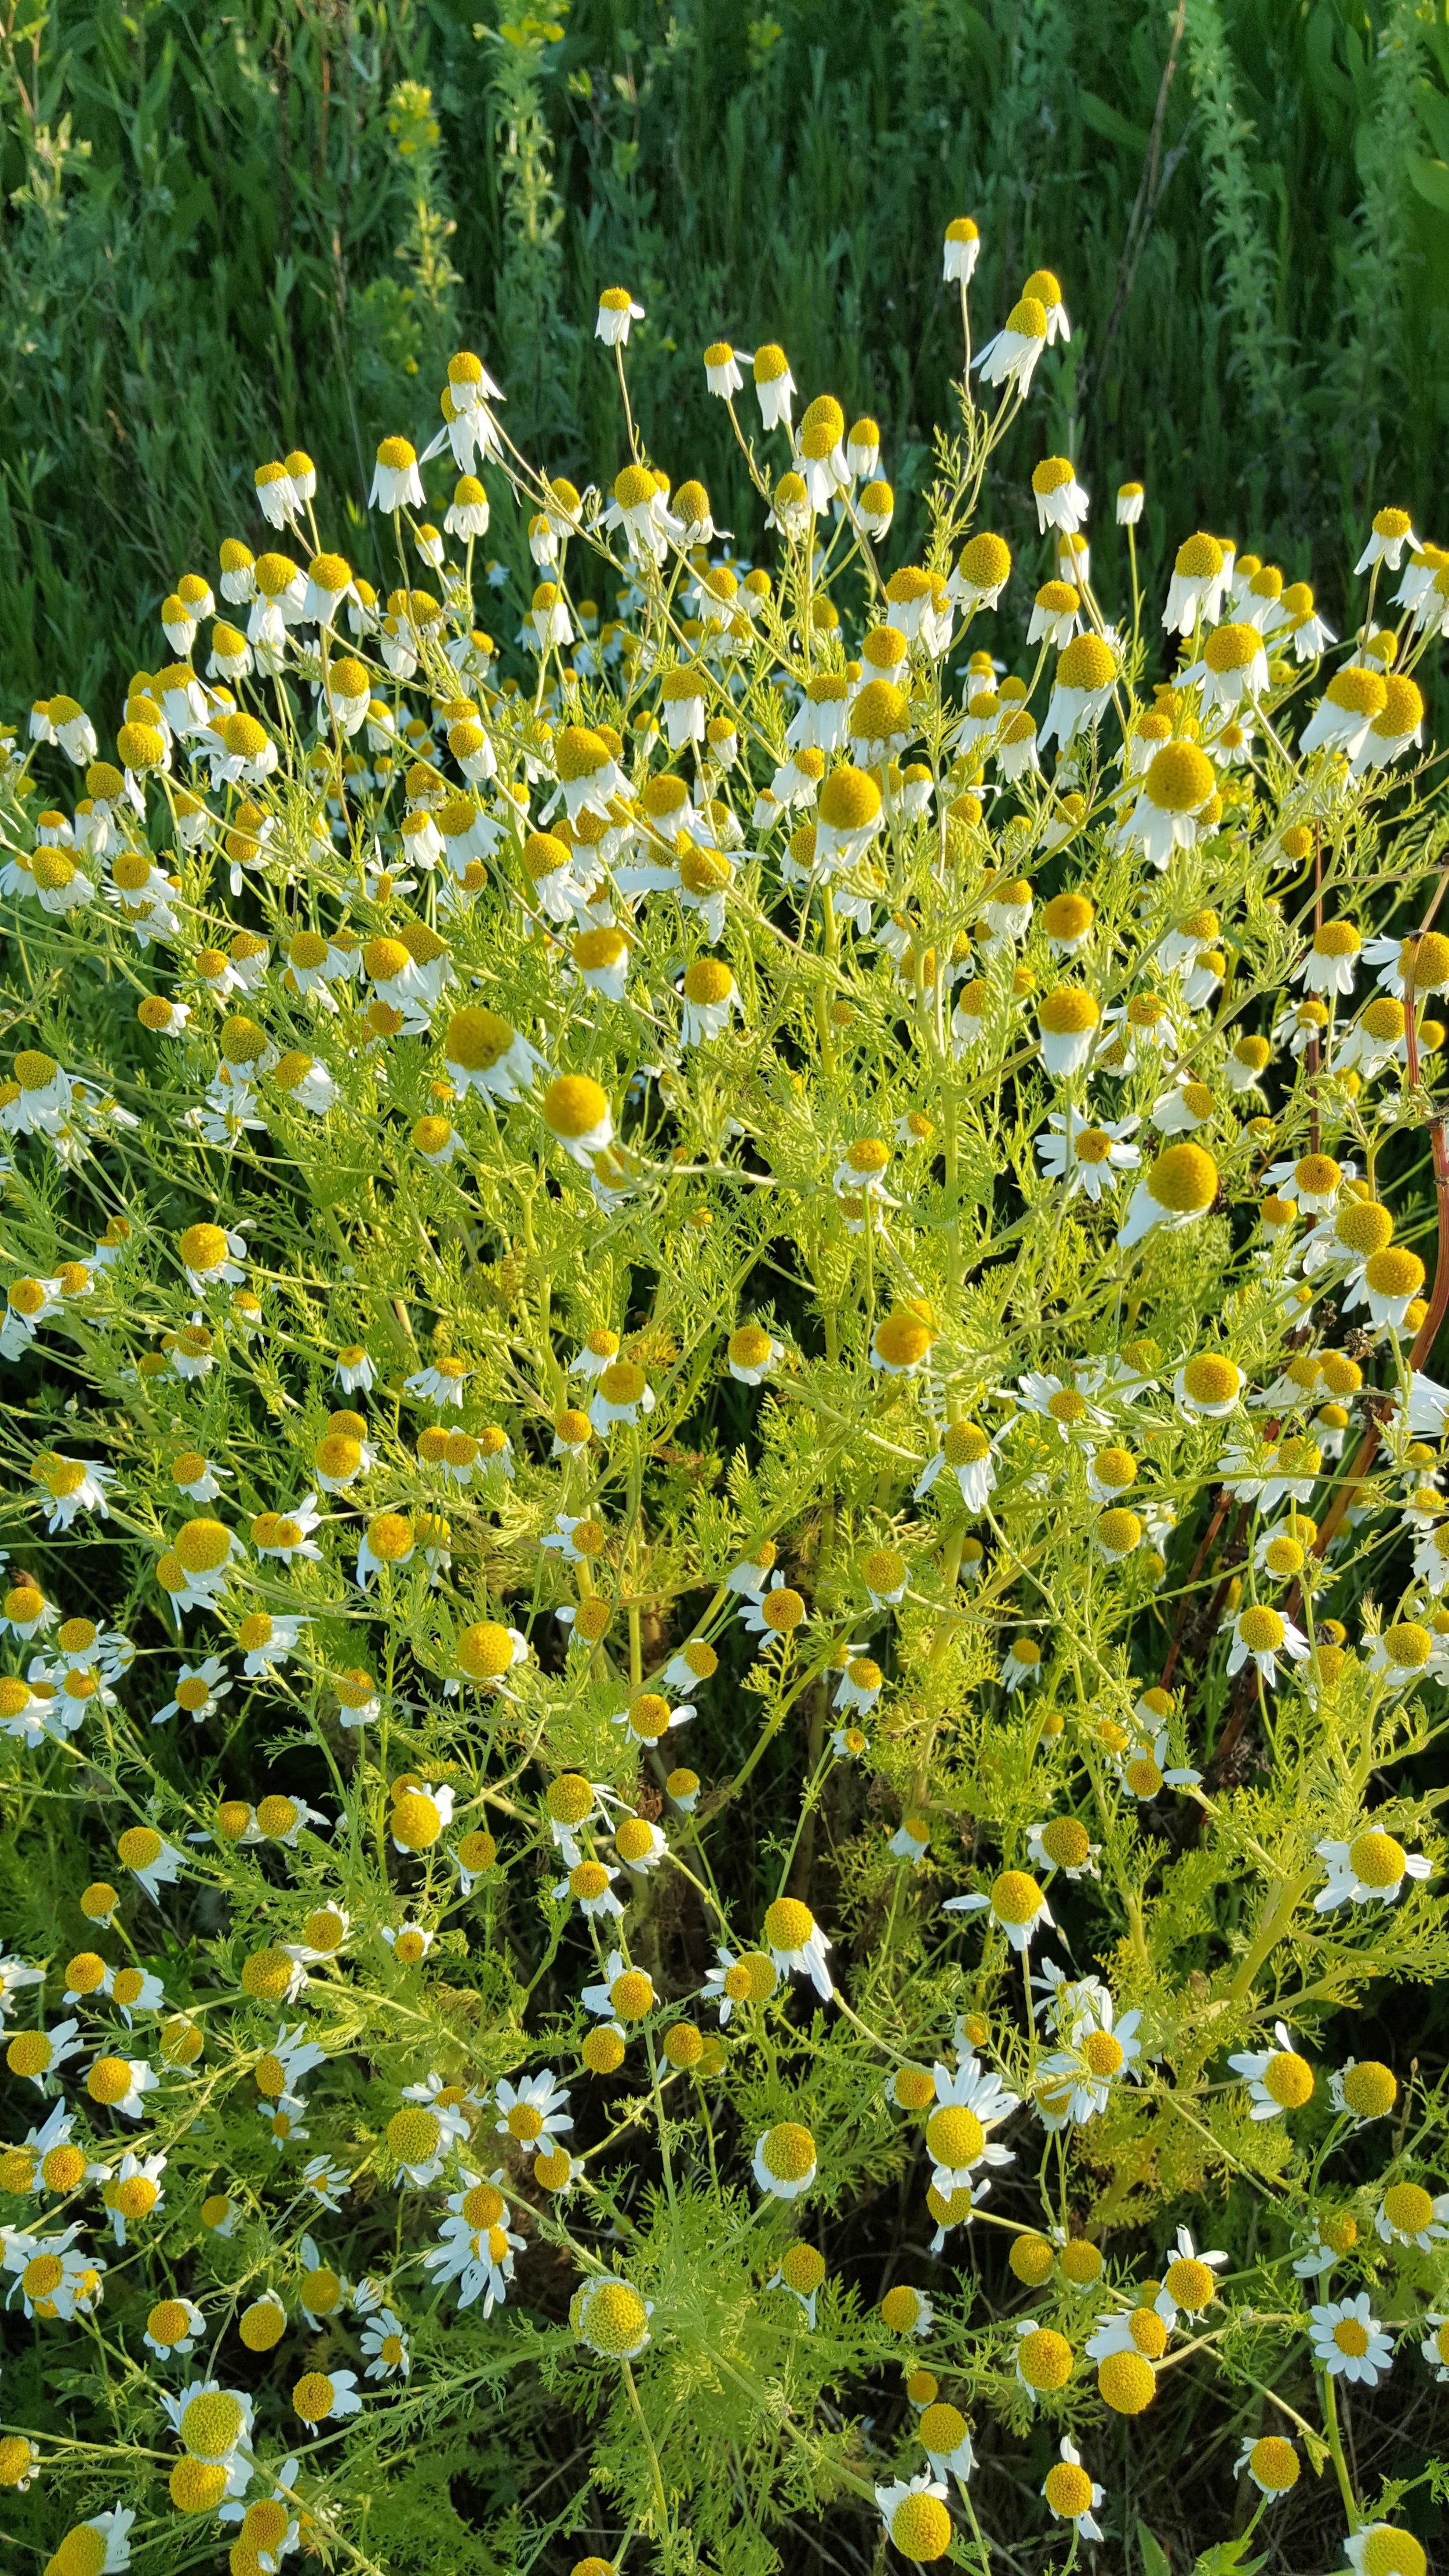 Stinking chamomile, ( Anthemis cotula ), introduced species from Eurasia